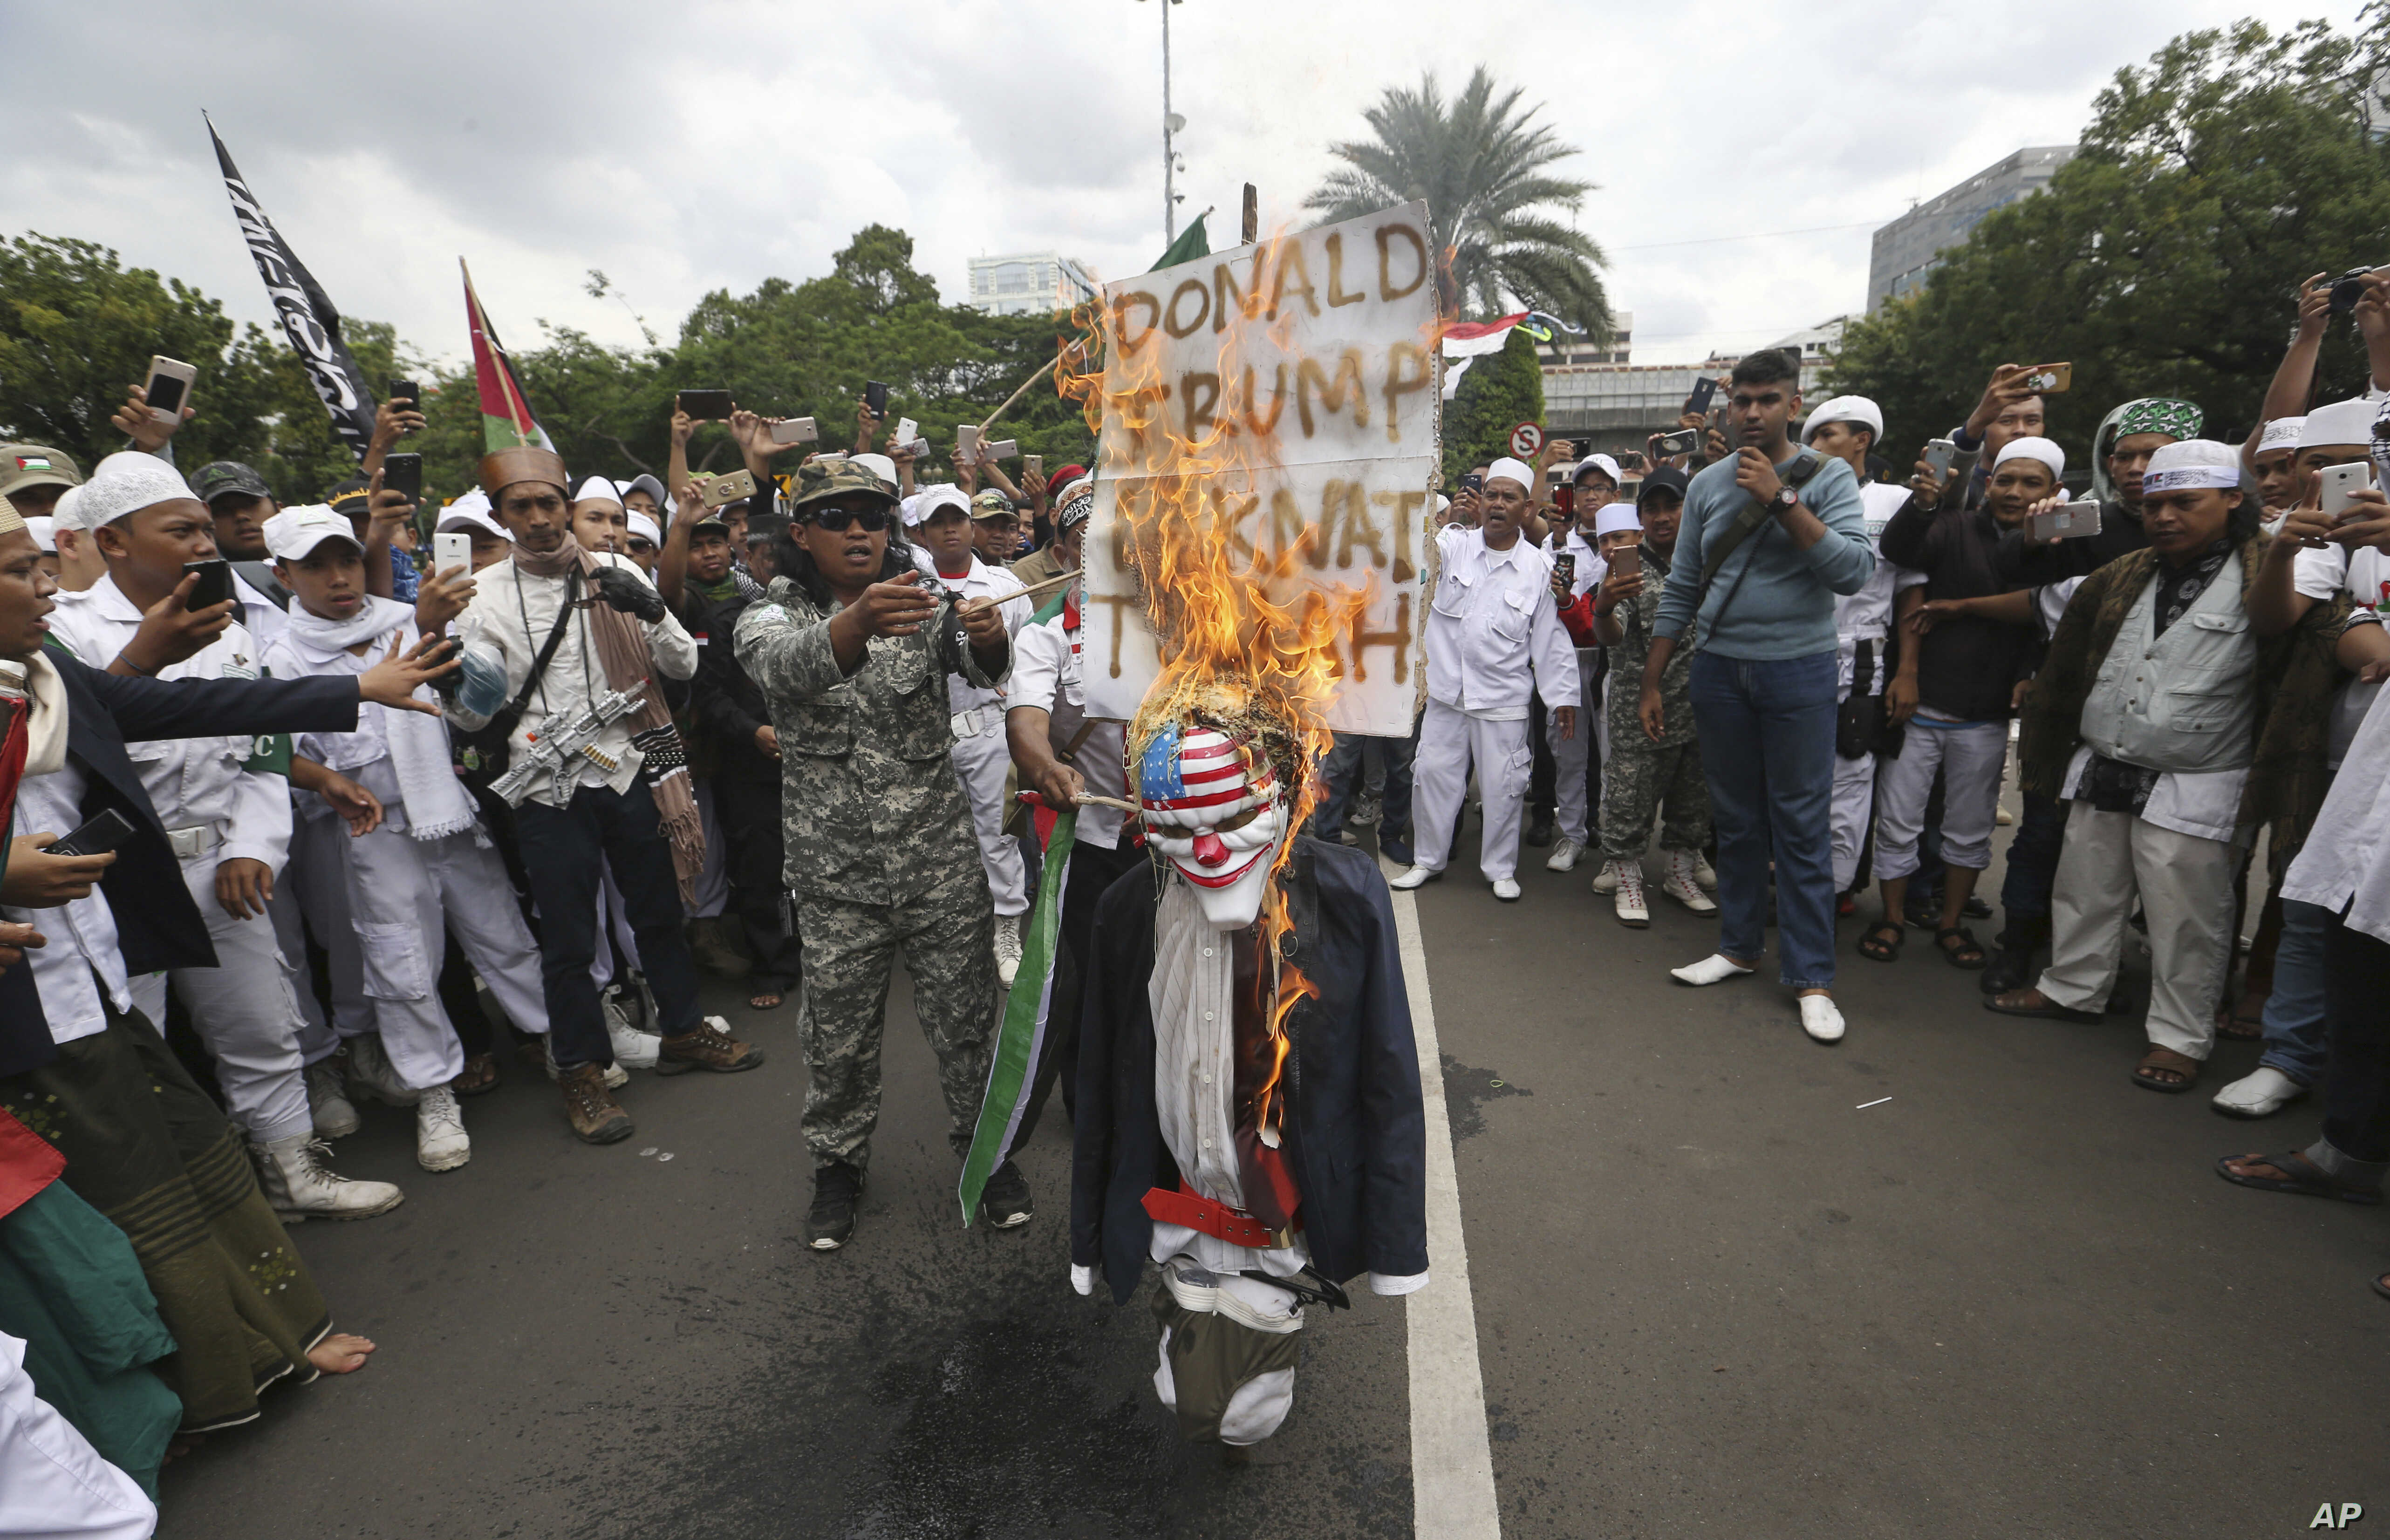 Protesters burn an effigy of U.S. President Donald Trump during a rally outside U.S. Embassy in Jakarta, Indonesia, Monday, Dec. 11, 2017. Hundreds of people staged the protest in the Indonesian capital of Jakarta to denounce Trump's decision to reco...